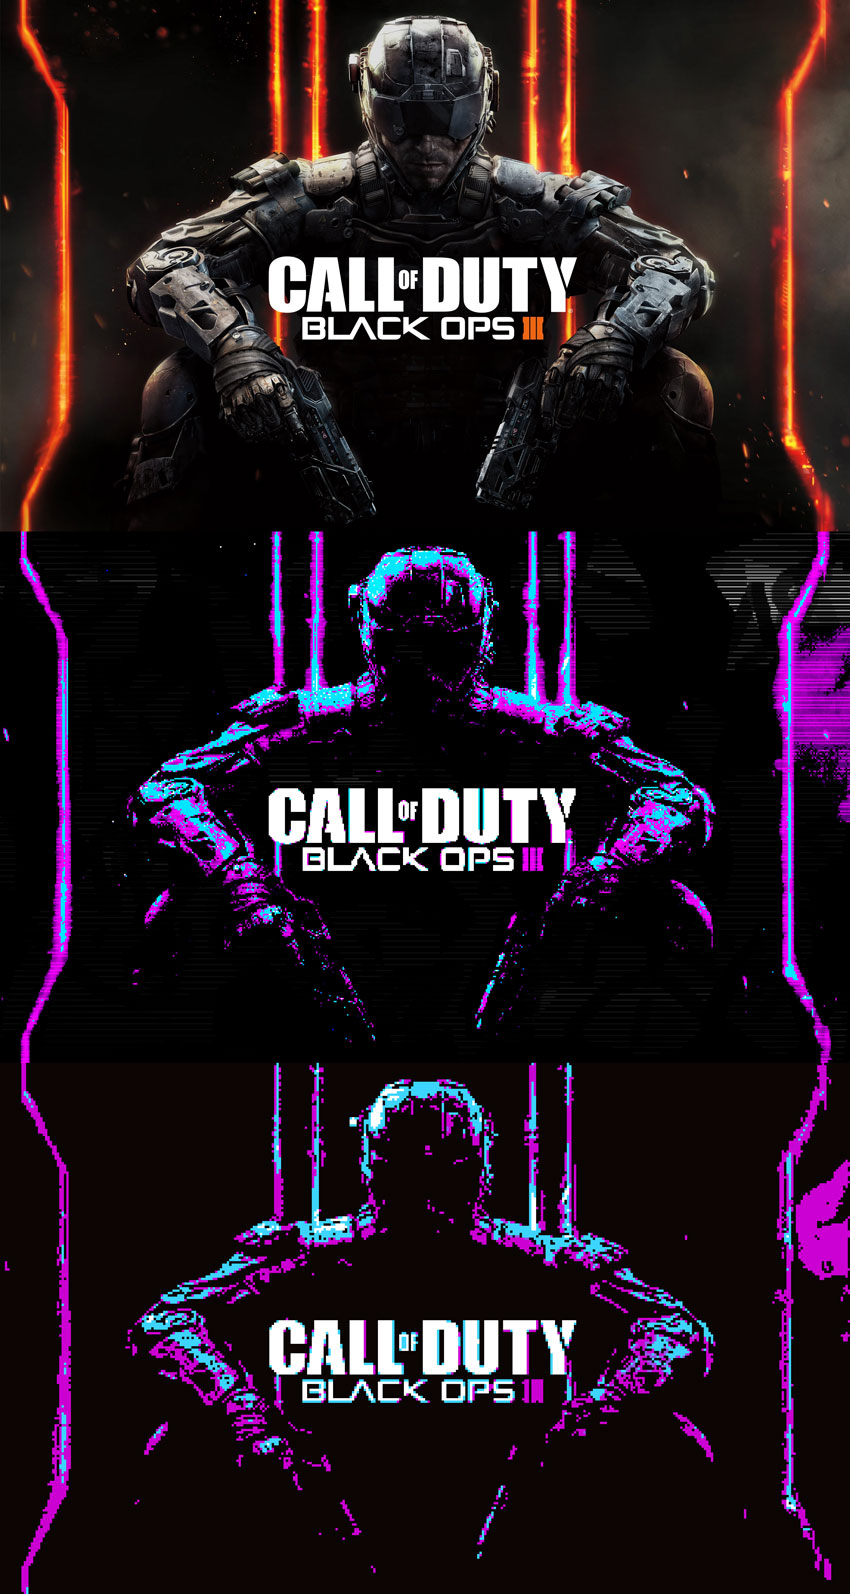 Call Of Duty Black Ops Wallpaper CGA Graphics